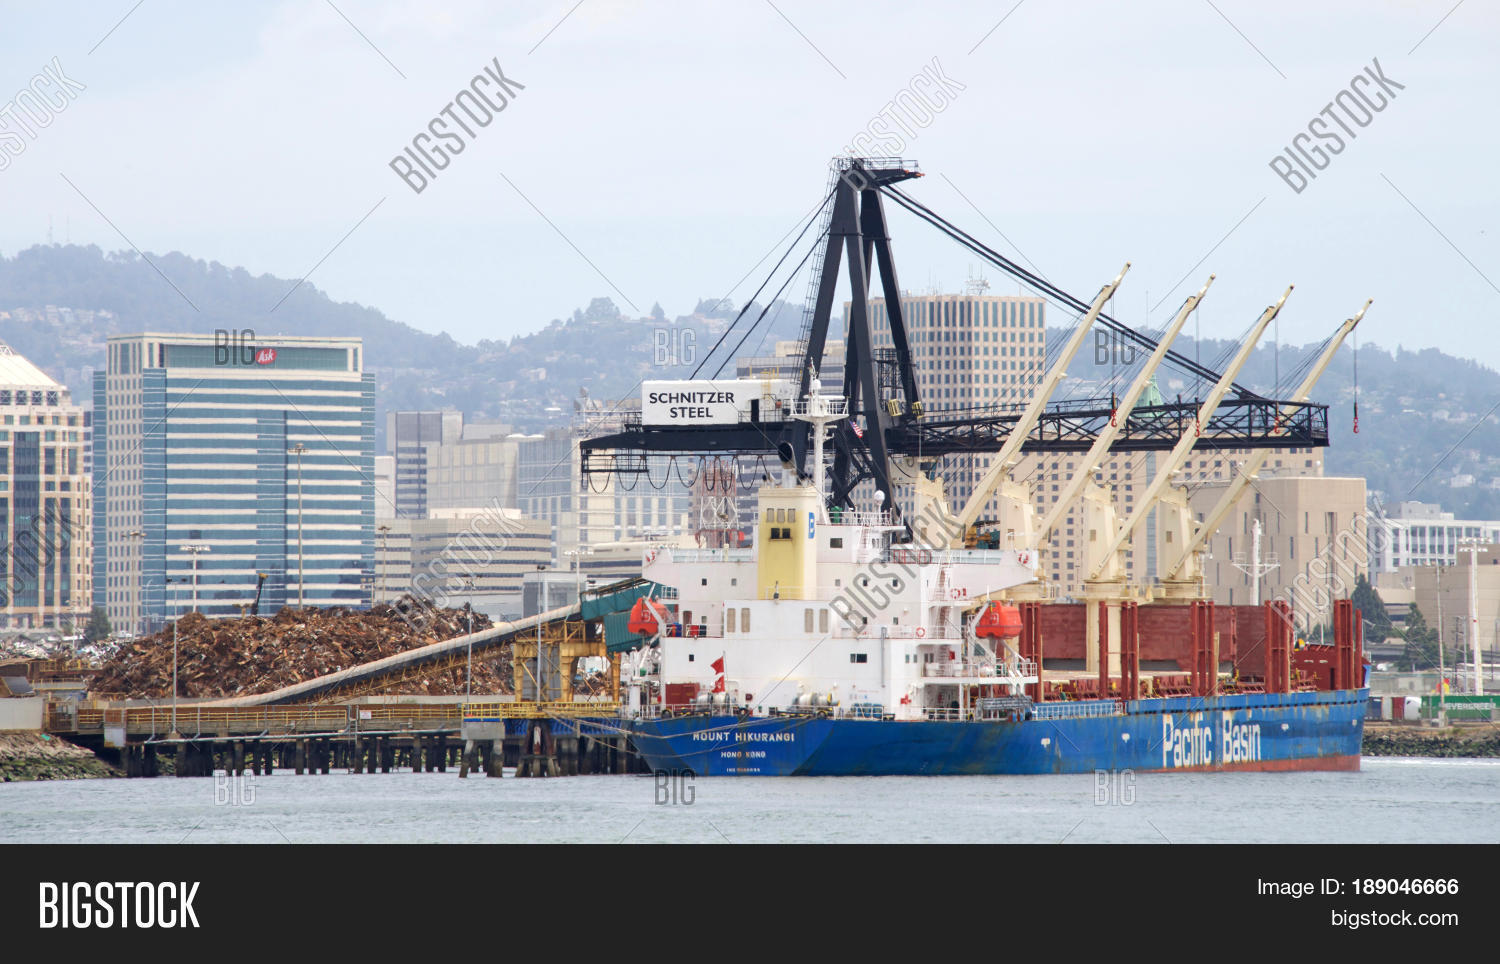 Oakland CA May Image Photo Free Trial Bigstock - Schnitzer scrap